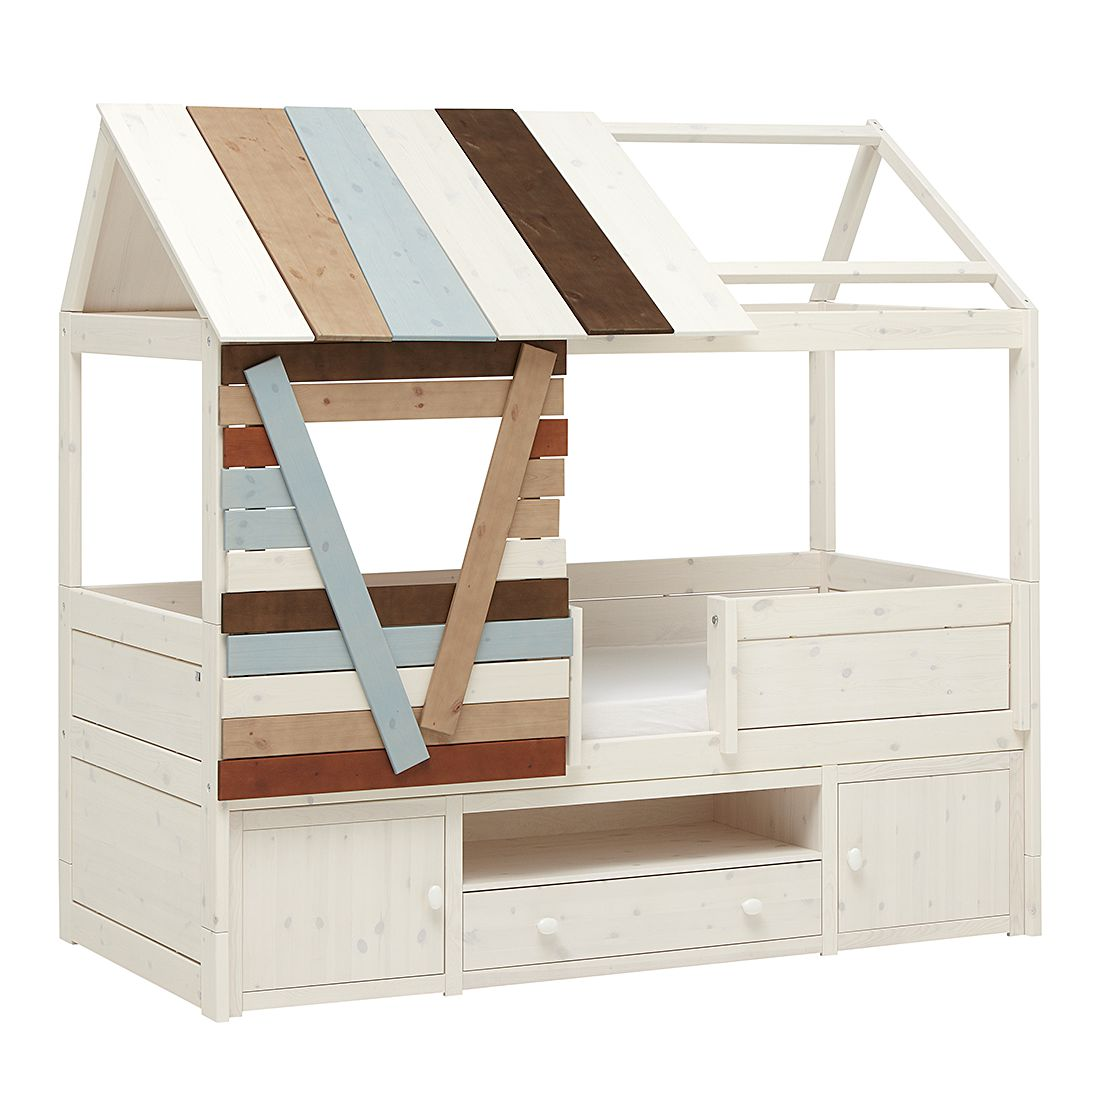 Kojenbett Hütte Lifetime Original - Kiefer massiv - Whitewash - Mit Rollrost, Lifetime Kidsrooms